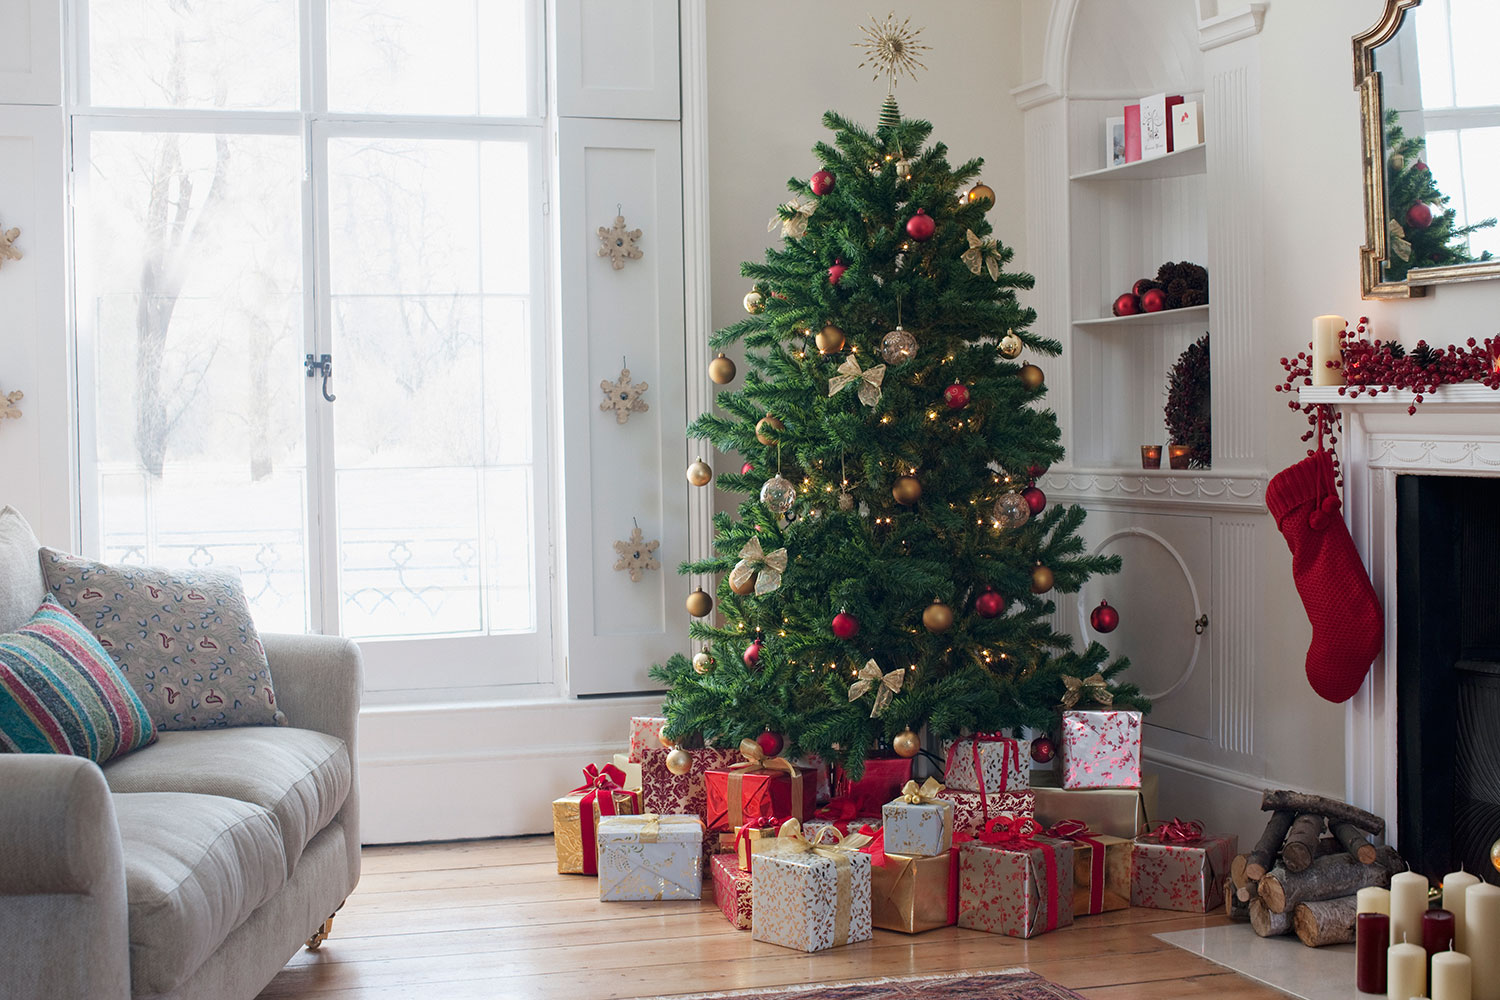 Brilliant Christmas Tree Decorating Ideas From Instagram